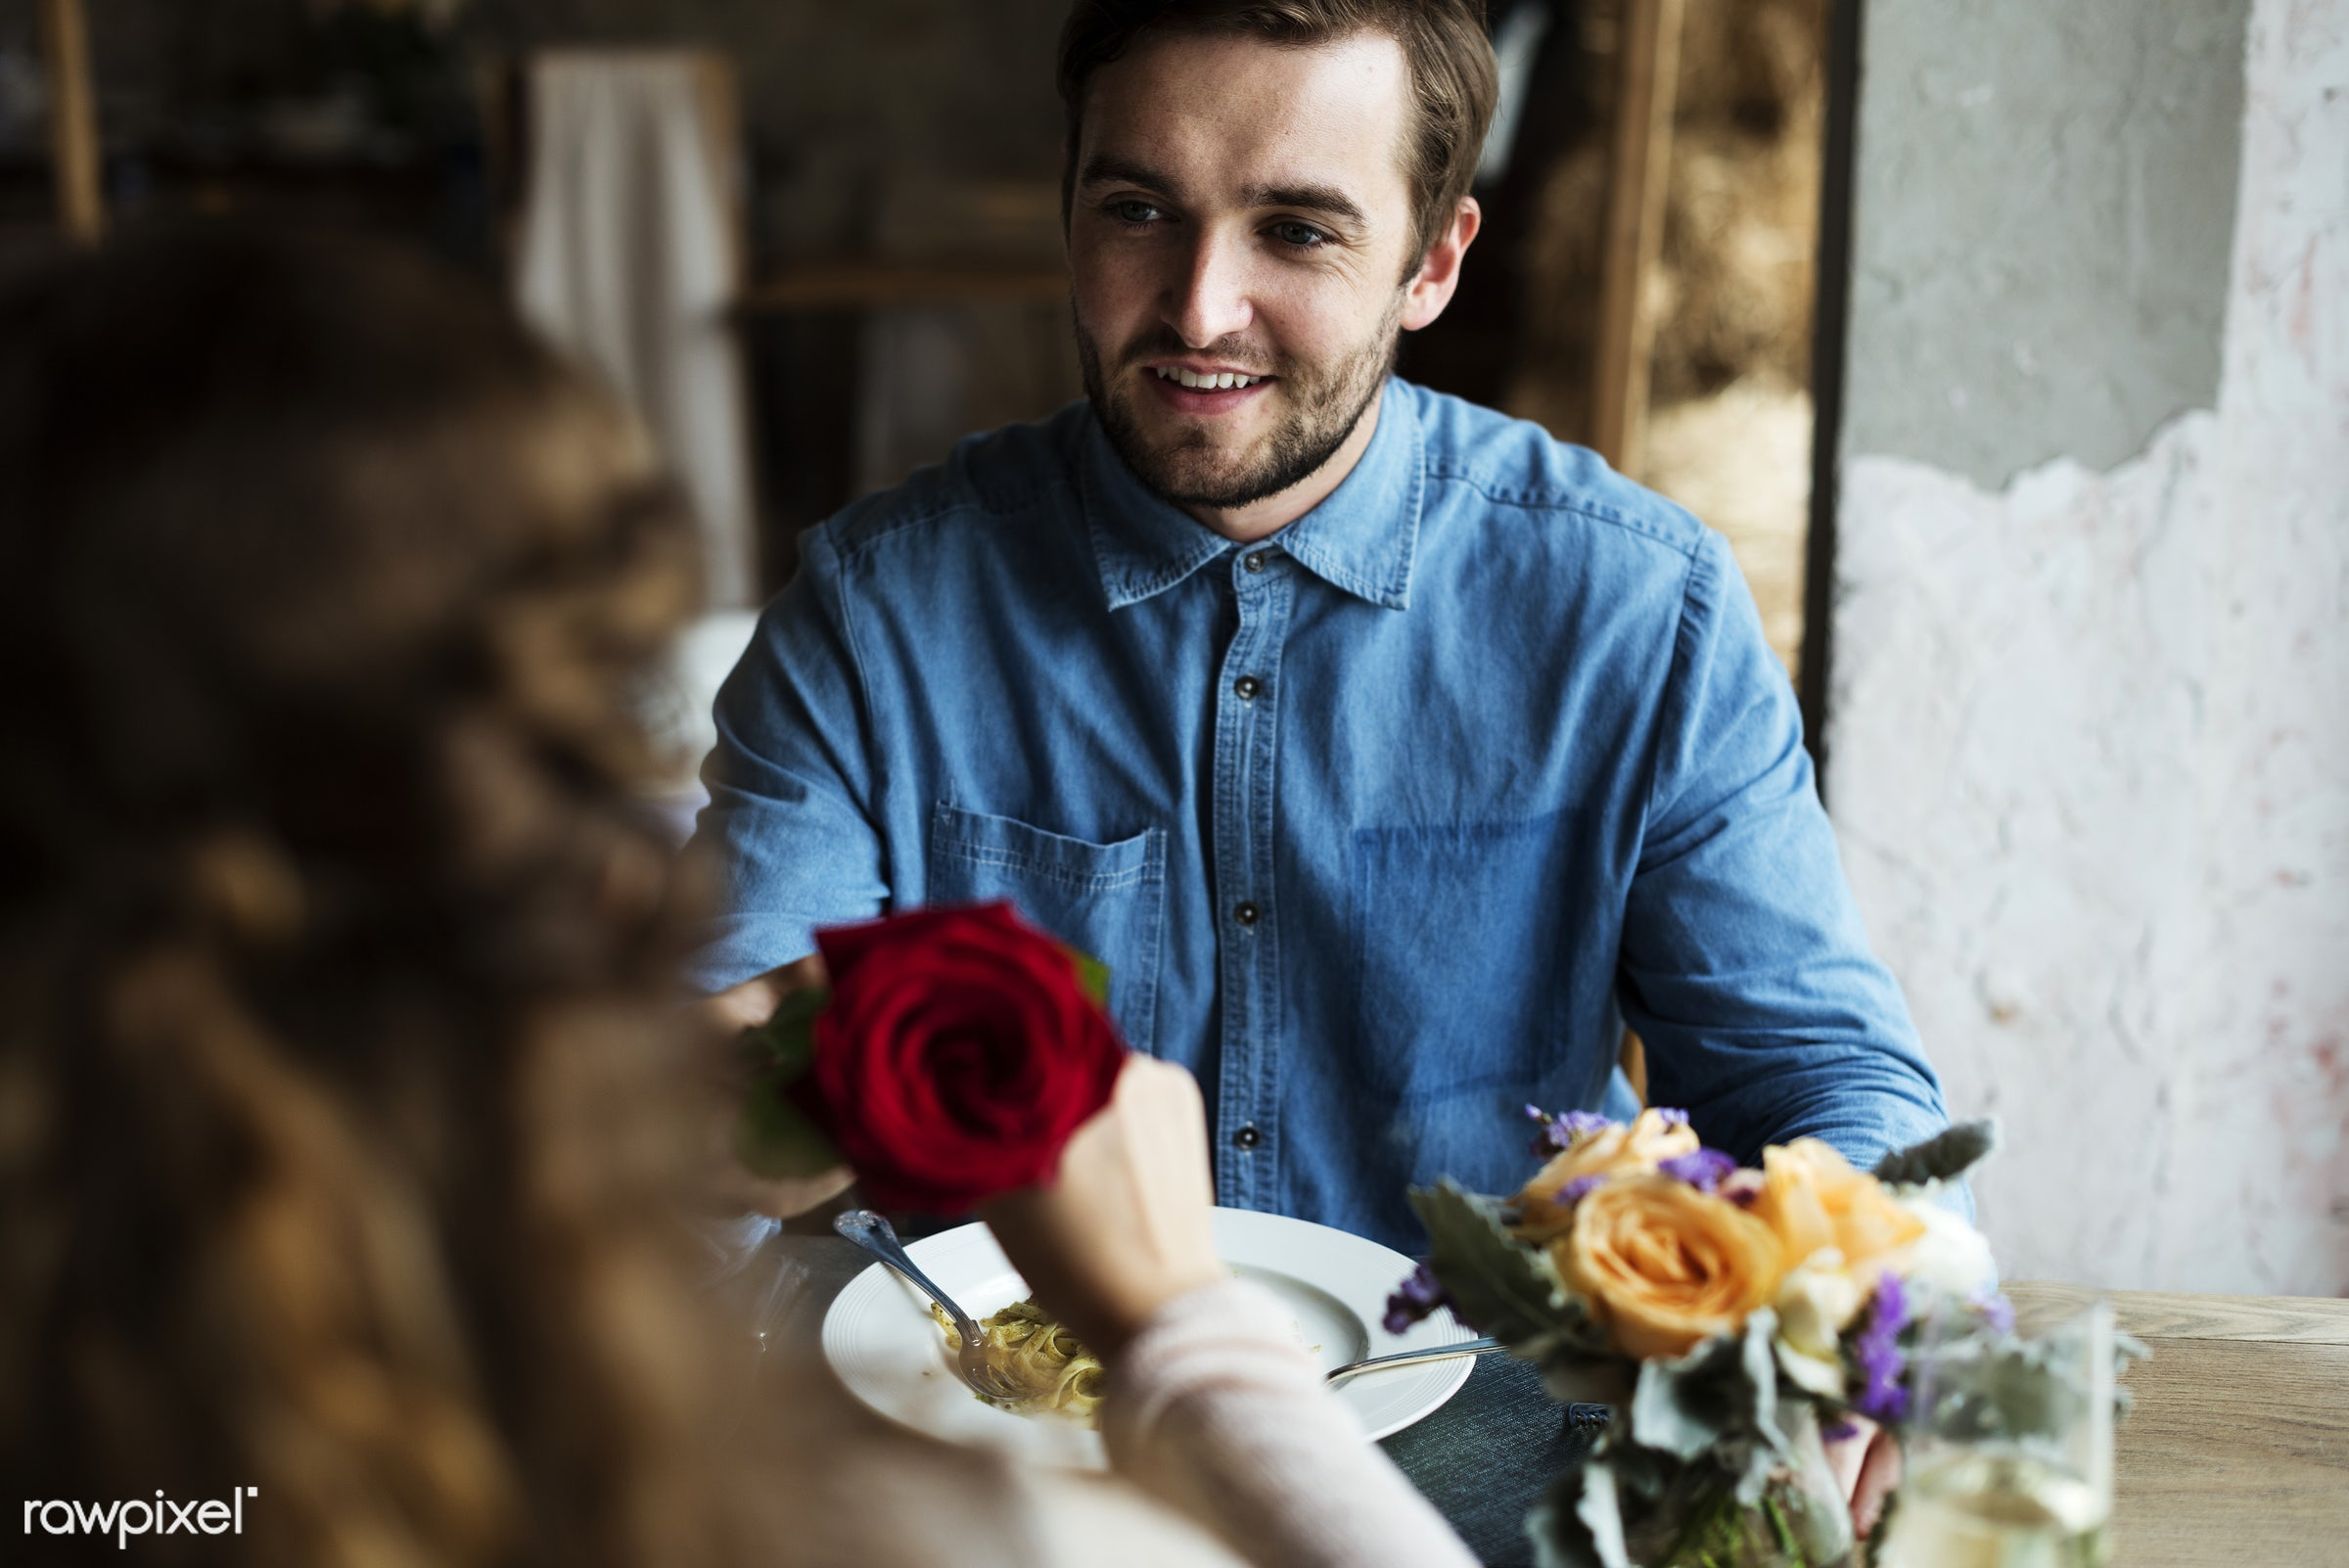 Romantic Man Giving a Rose to Woman on a Date - giving, adult, celebrate, celebration, cheerful, couple, date, dating, dine...